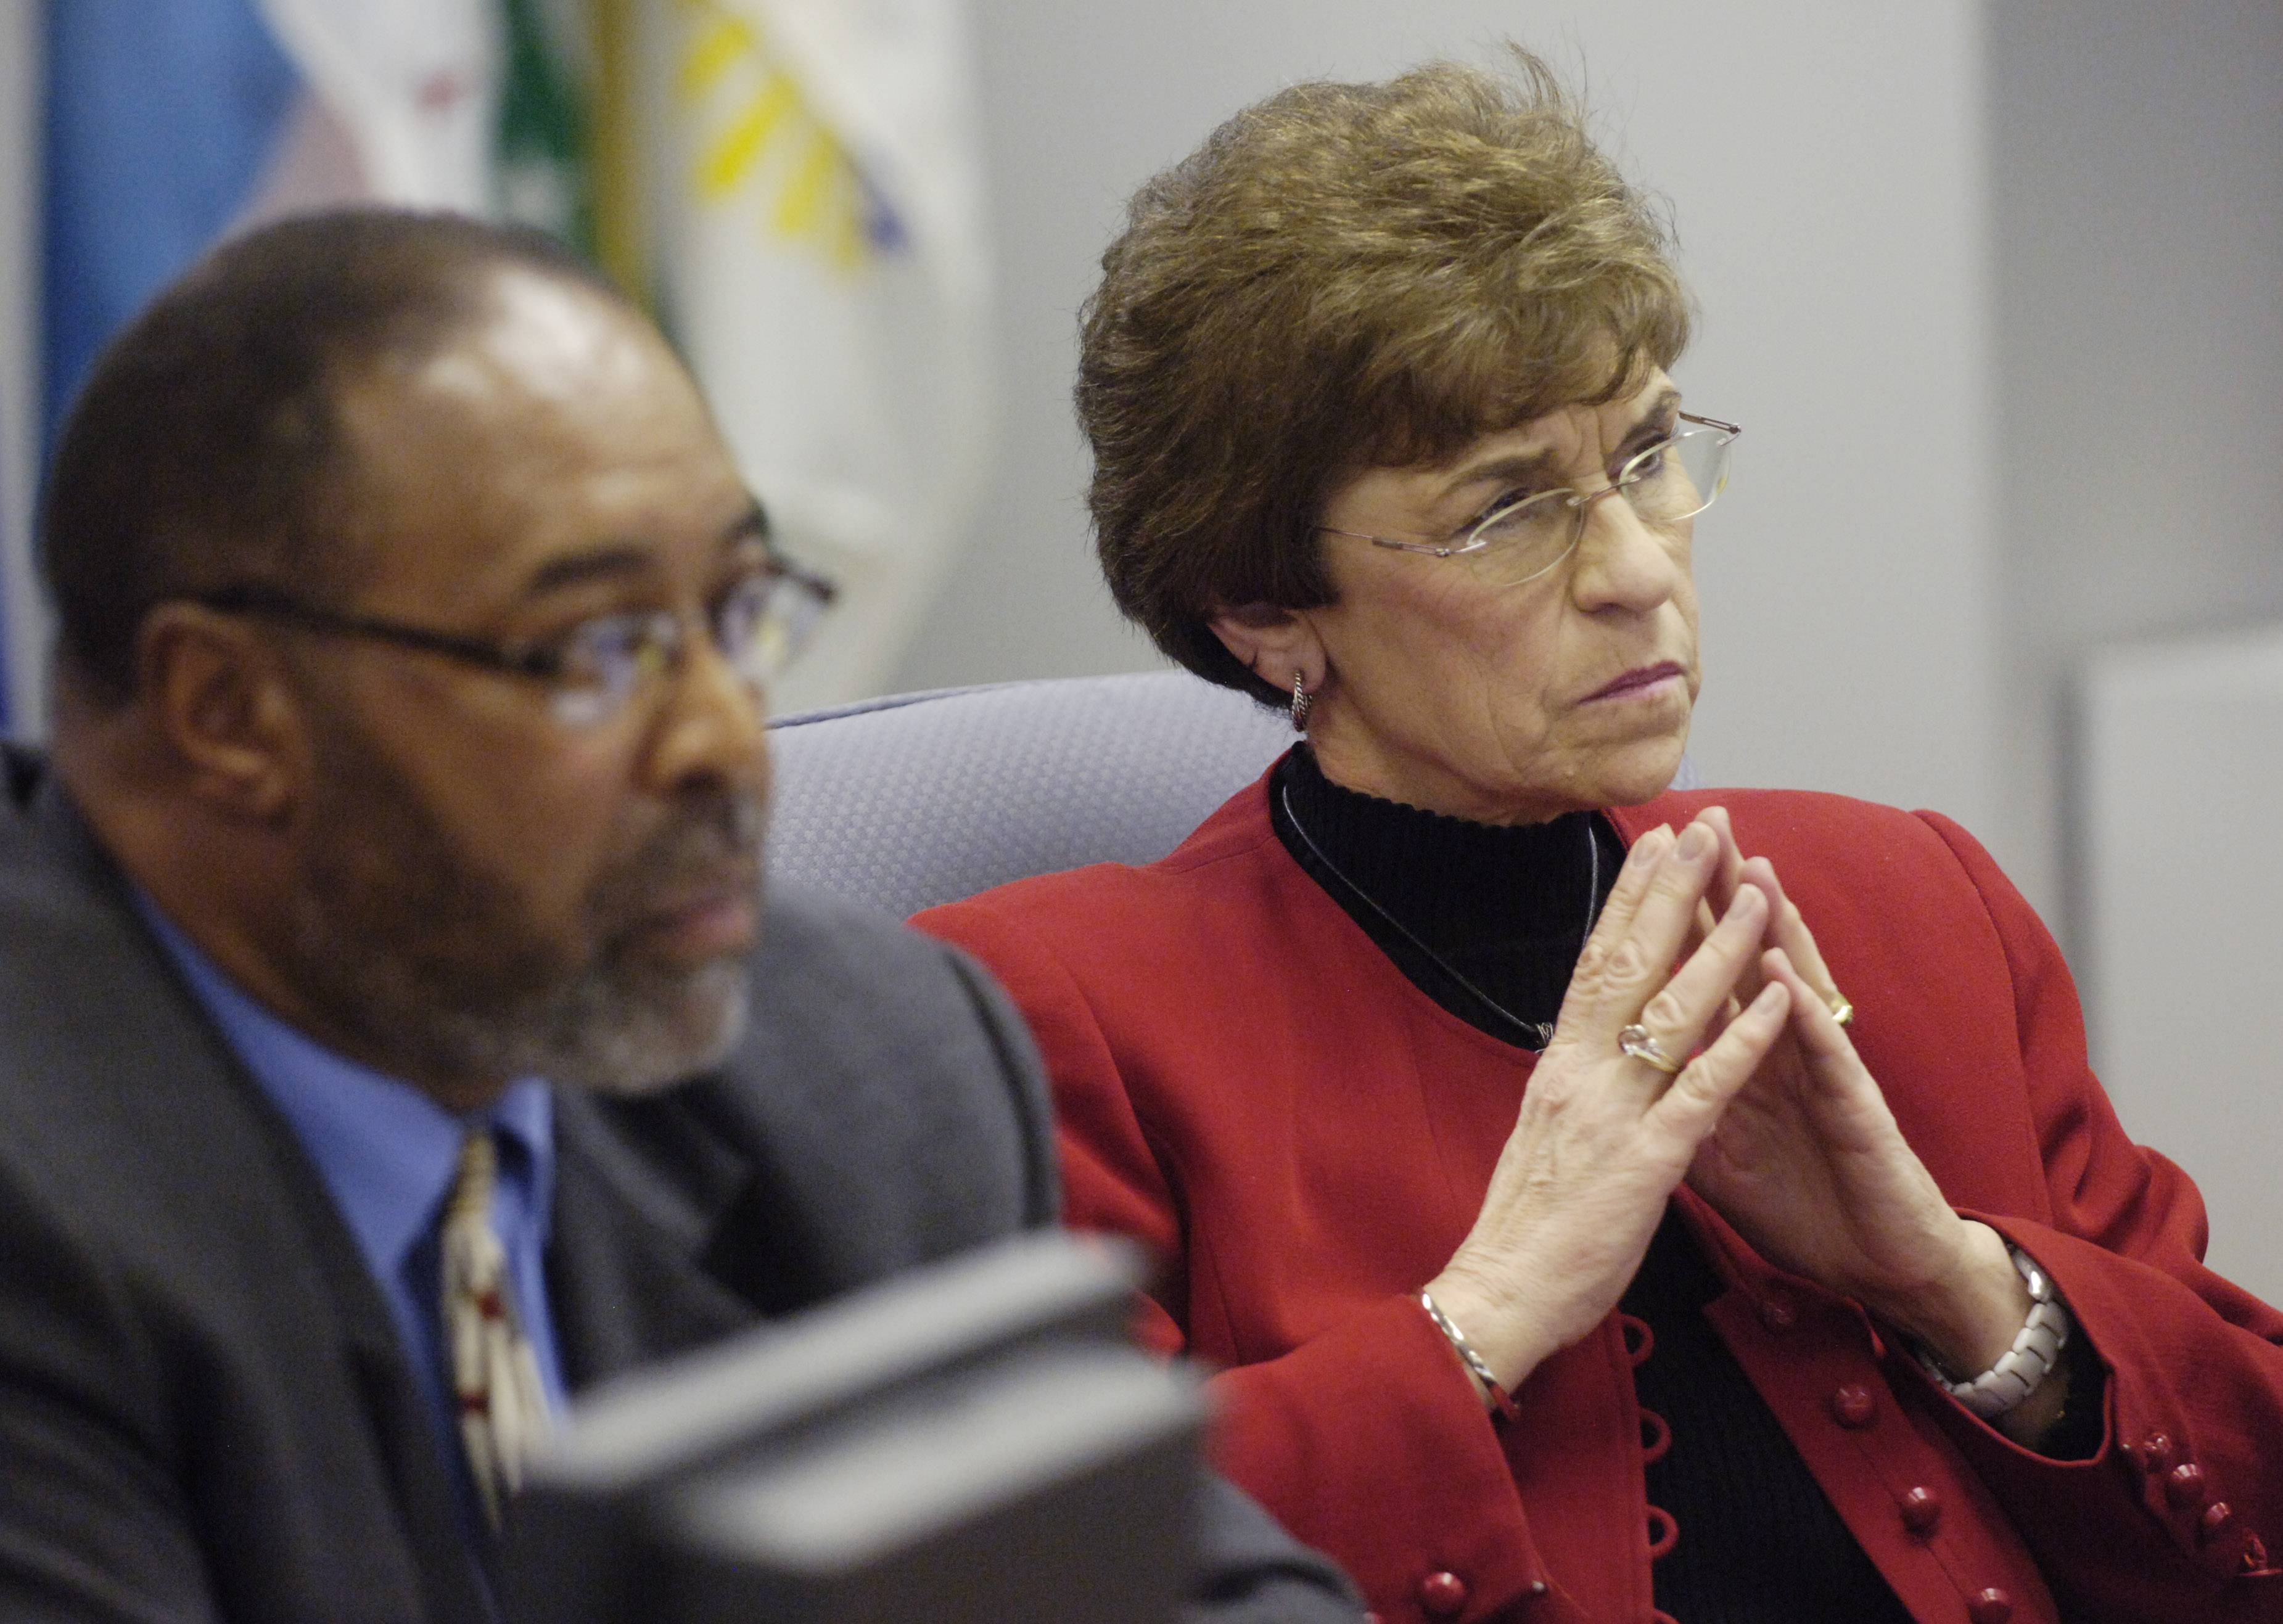 Metra Director Arlene Mulder will attend her last Metra meeting this Friday.